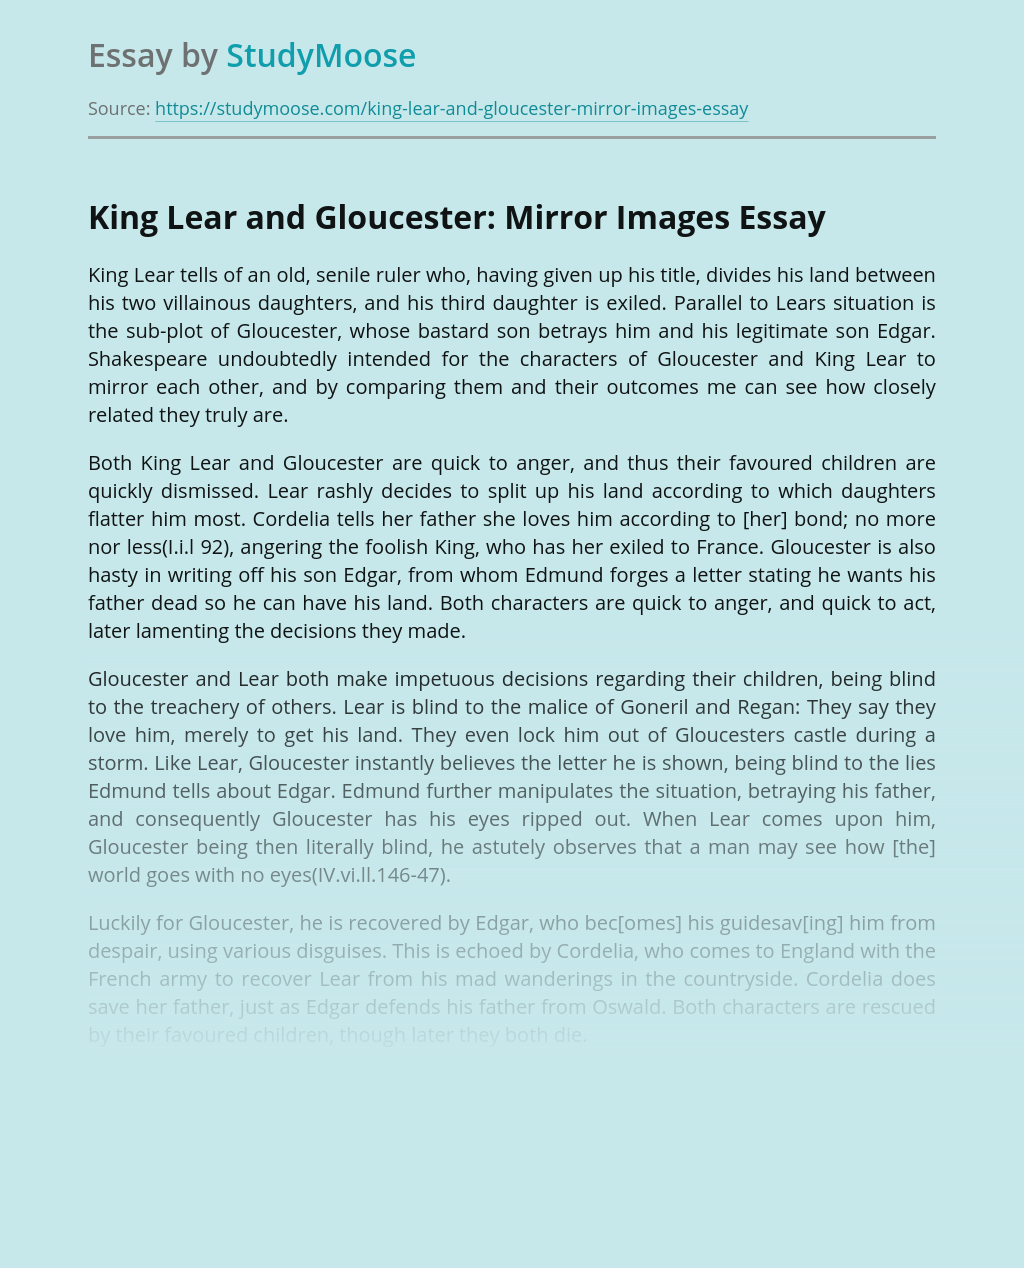 King Lear and Gloucester: Mirror Images